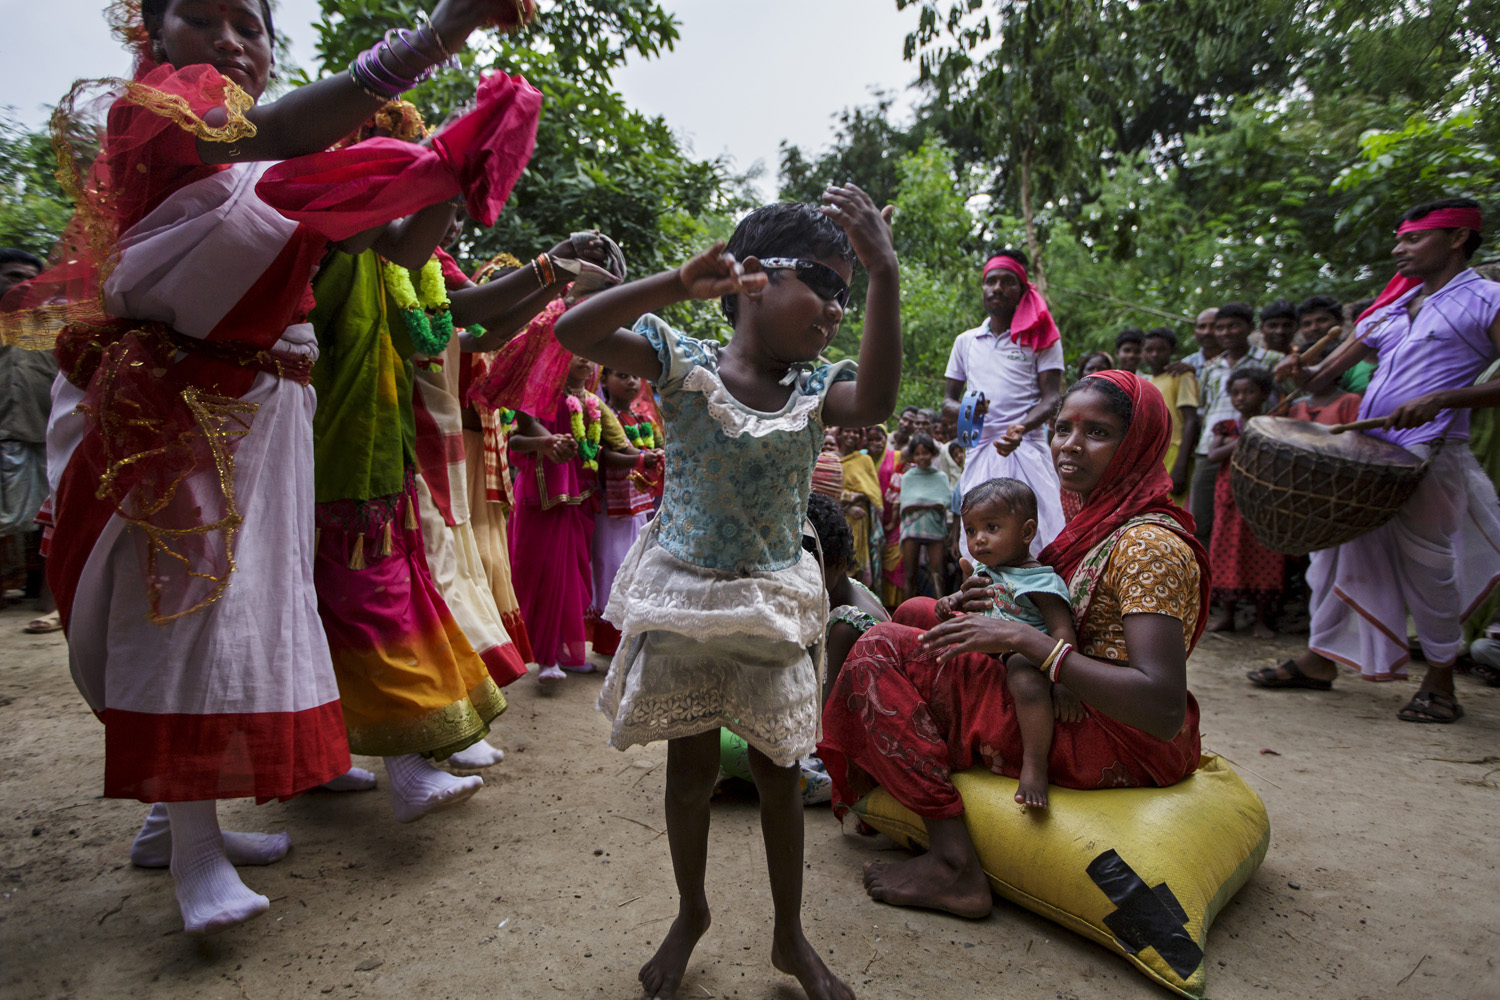 Anita joins in the celebrations as she and her sister Sonia return home to their rural village on Oct. 27, 2013 in West Bengal, India.